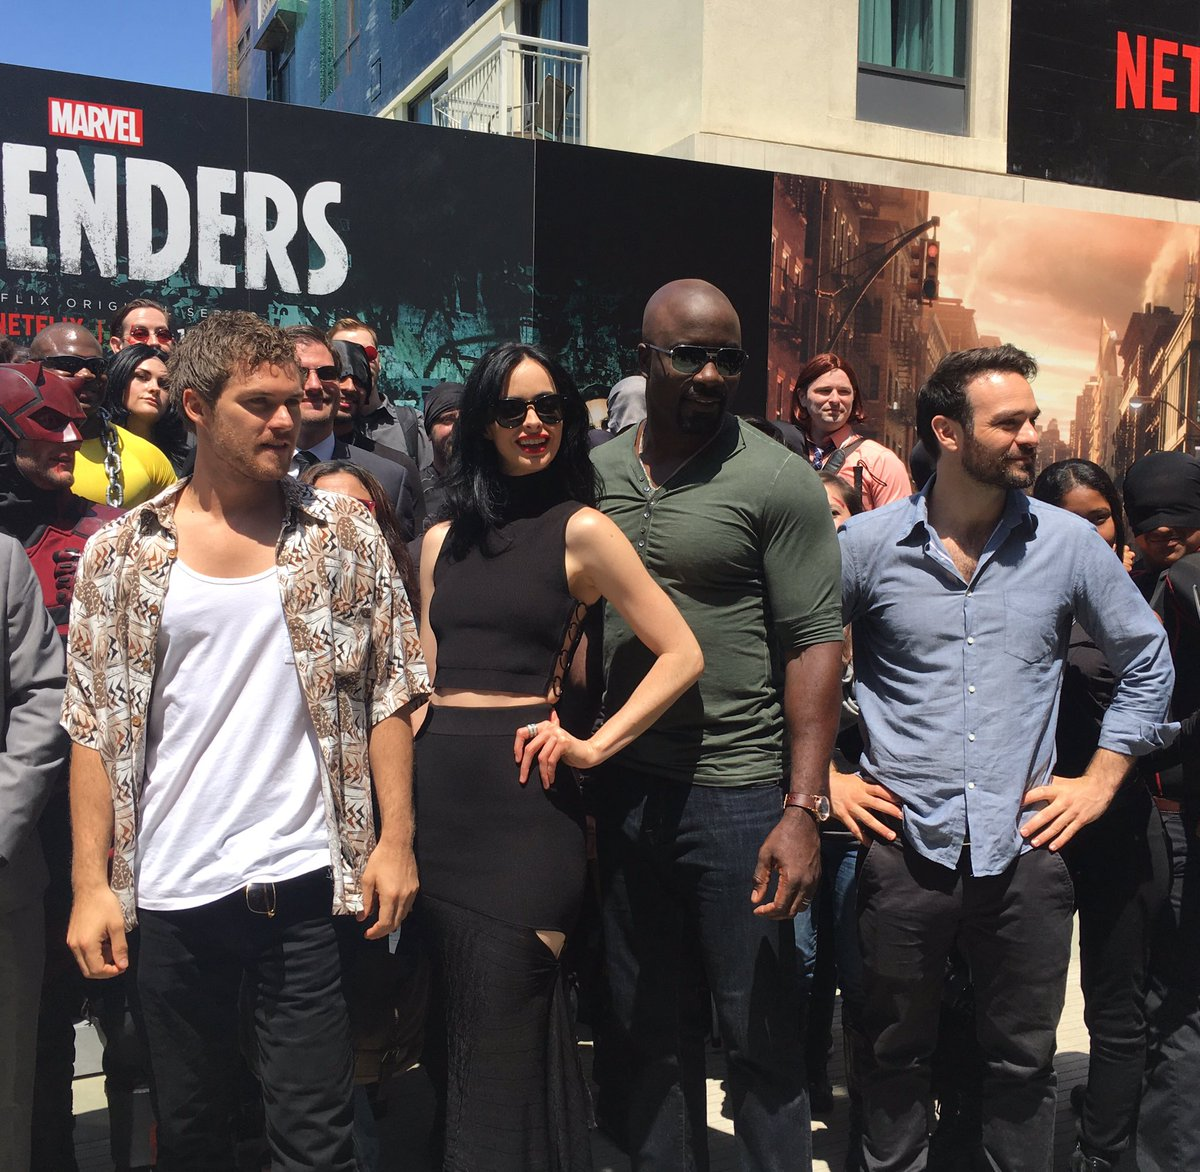 Surprise visit from the cast of The Defenders!